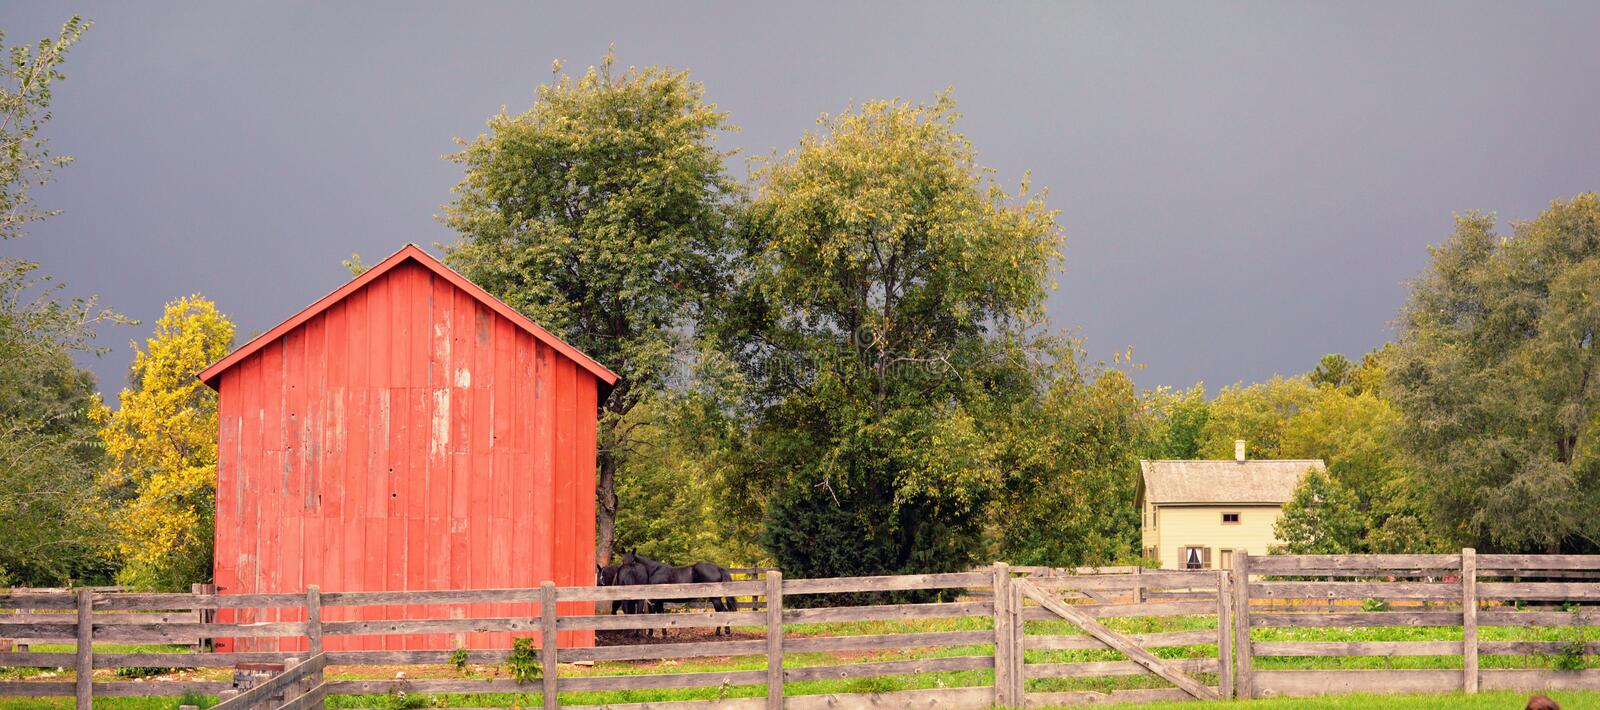 House Barn and Fence royalty free stock photos